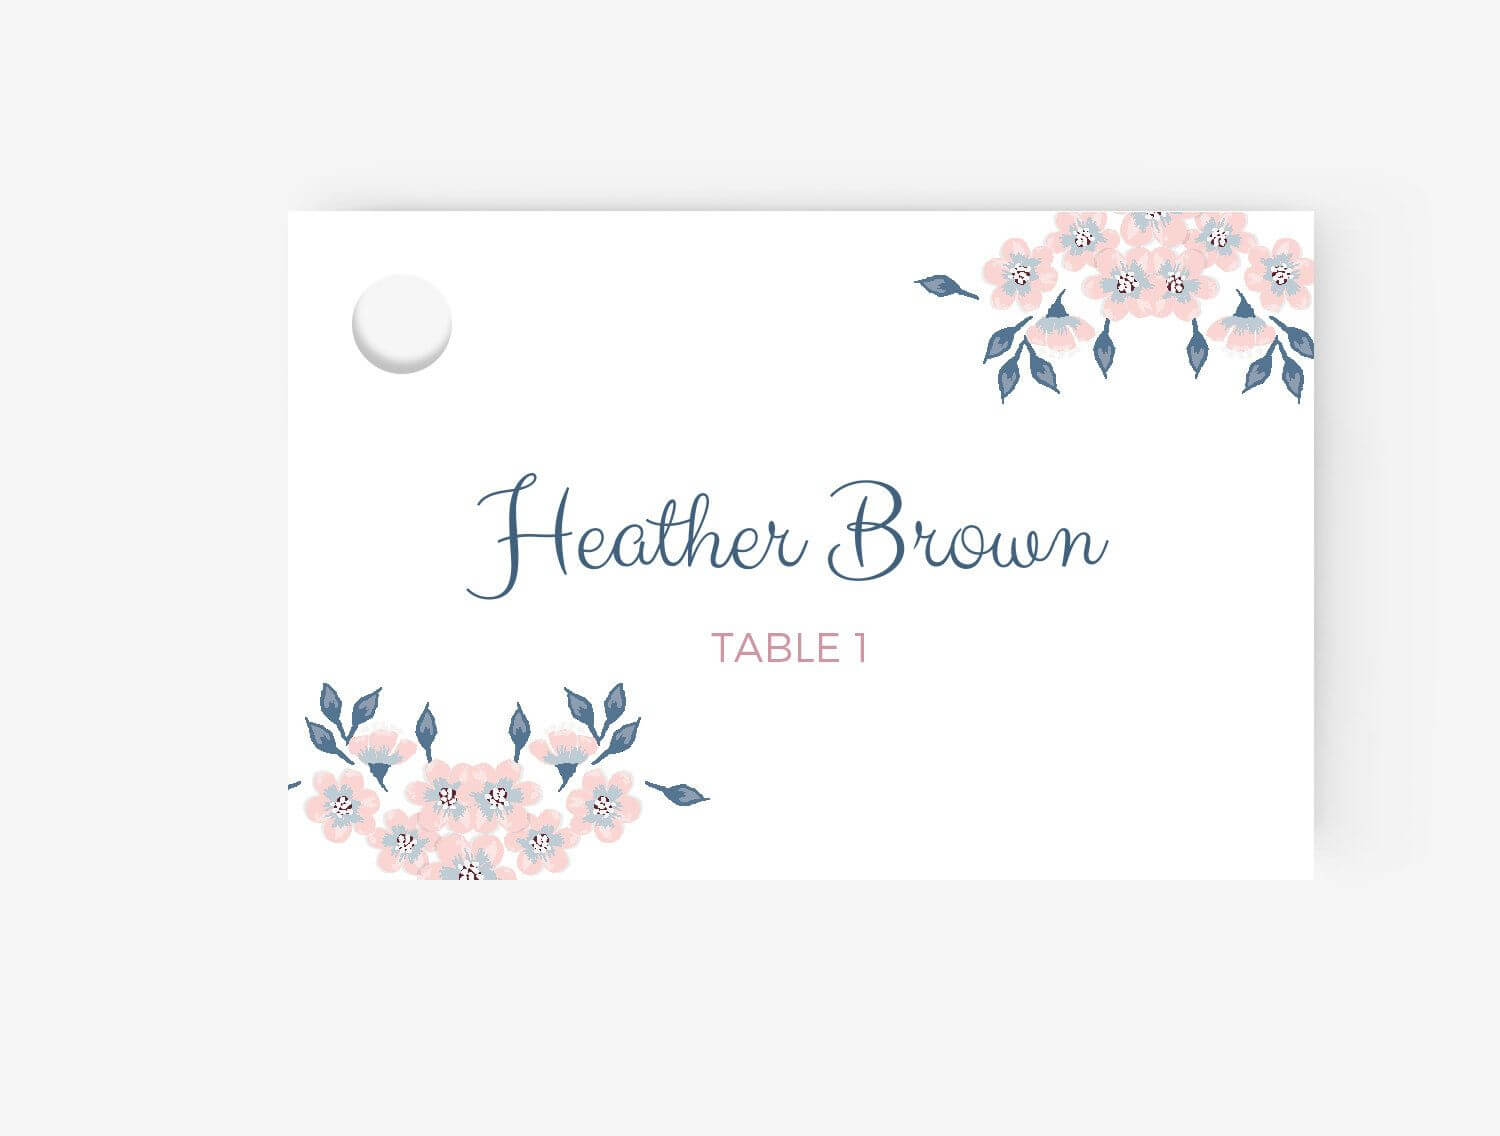 005 Free Place Card Template Ideas Cards Excellent Word with regard to Ms Word Place Card Template